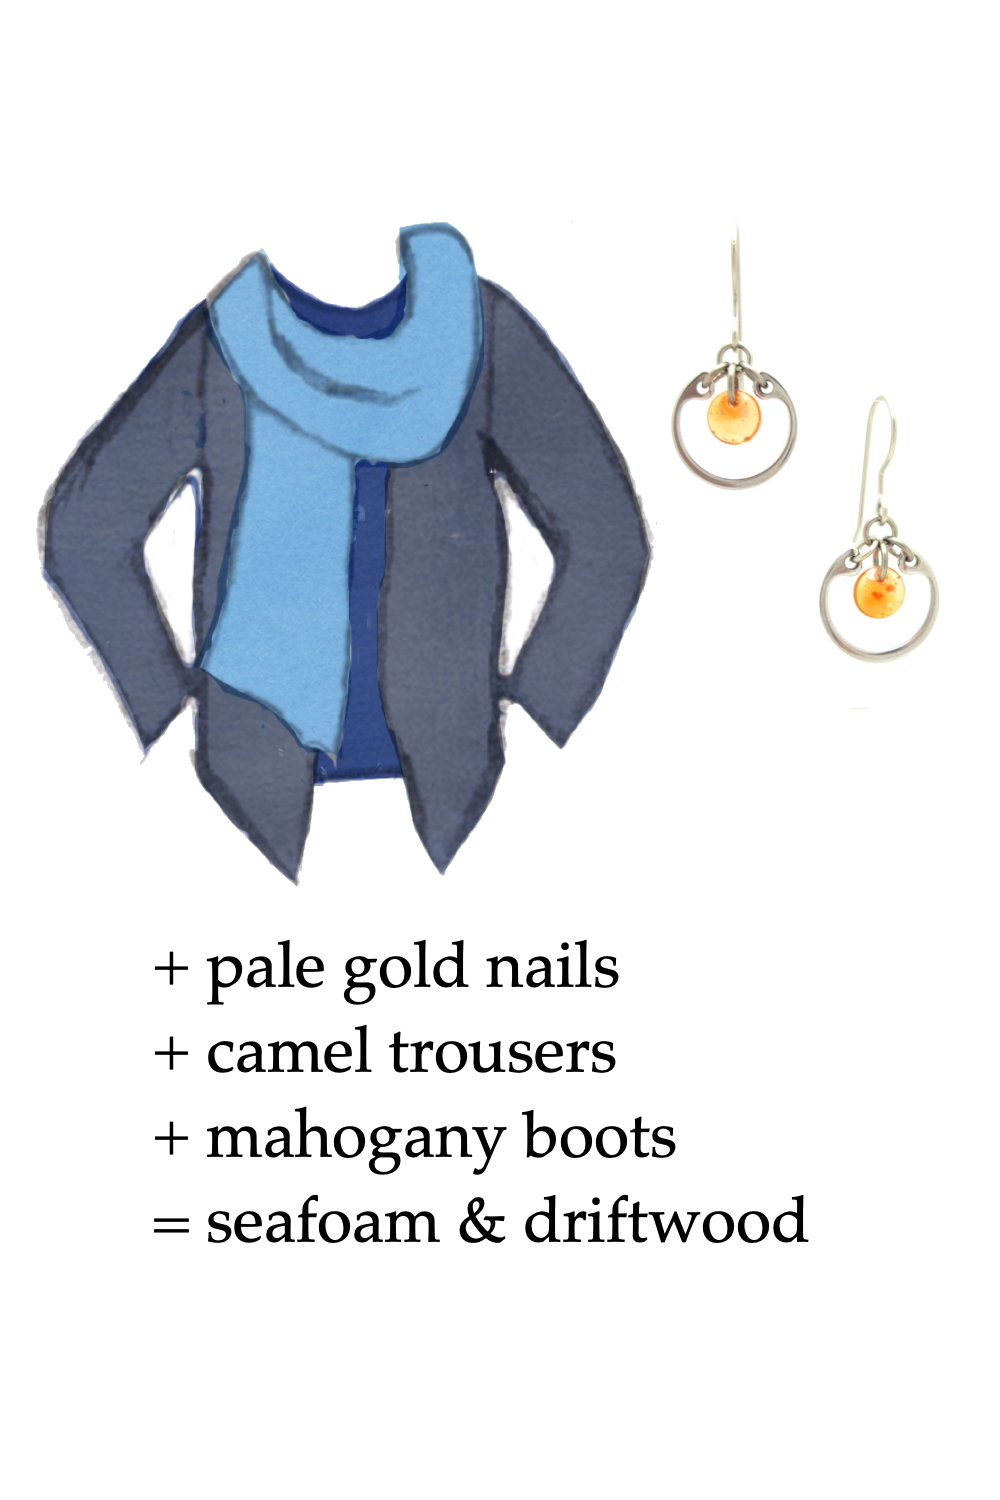 Style sketch of an outfit idea in shades of blue, with a dark blue tee, light blue scarf, & dusty indigo cardigan, with Wraptillion's small modern circle earrings in orange. Text on image reads: + pale gold nails + camel trousers + mahogany boots = seafoam & driftwood